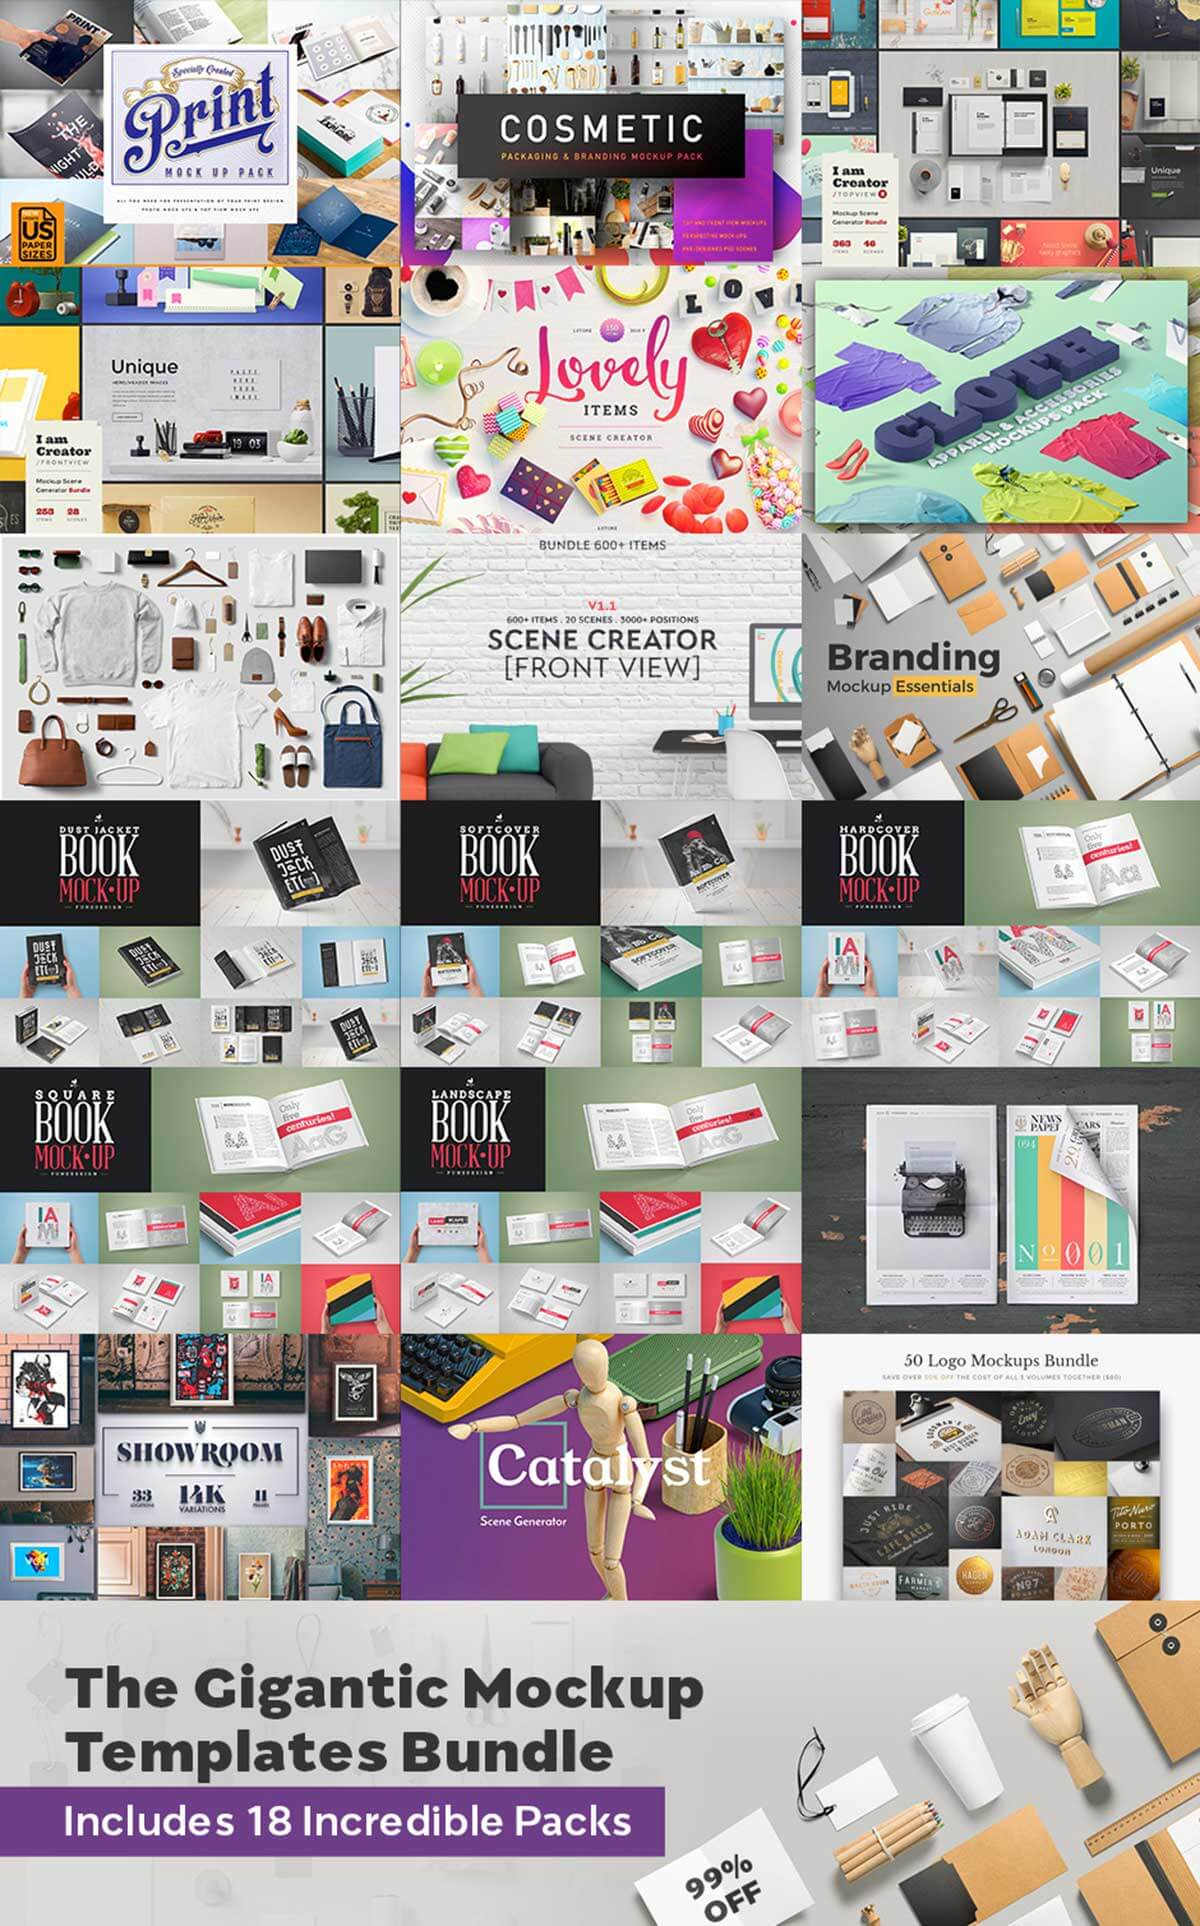 The Gigantic Mockup Templates Bundle: With 18 Incredible Packs